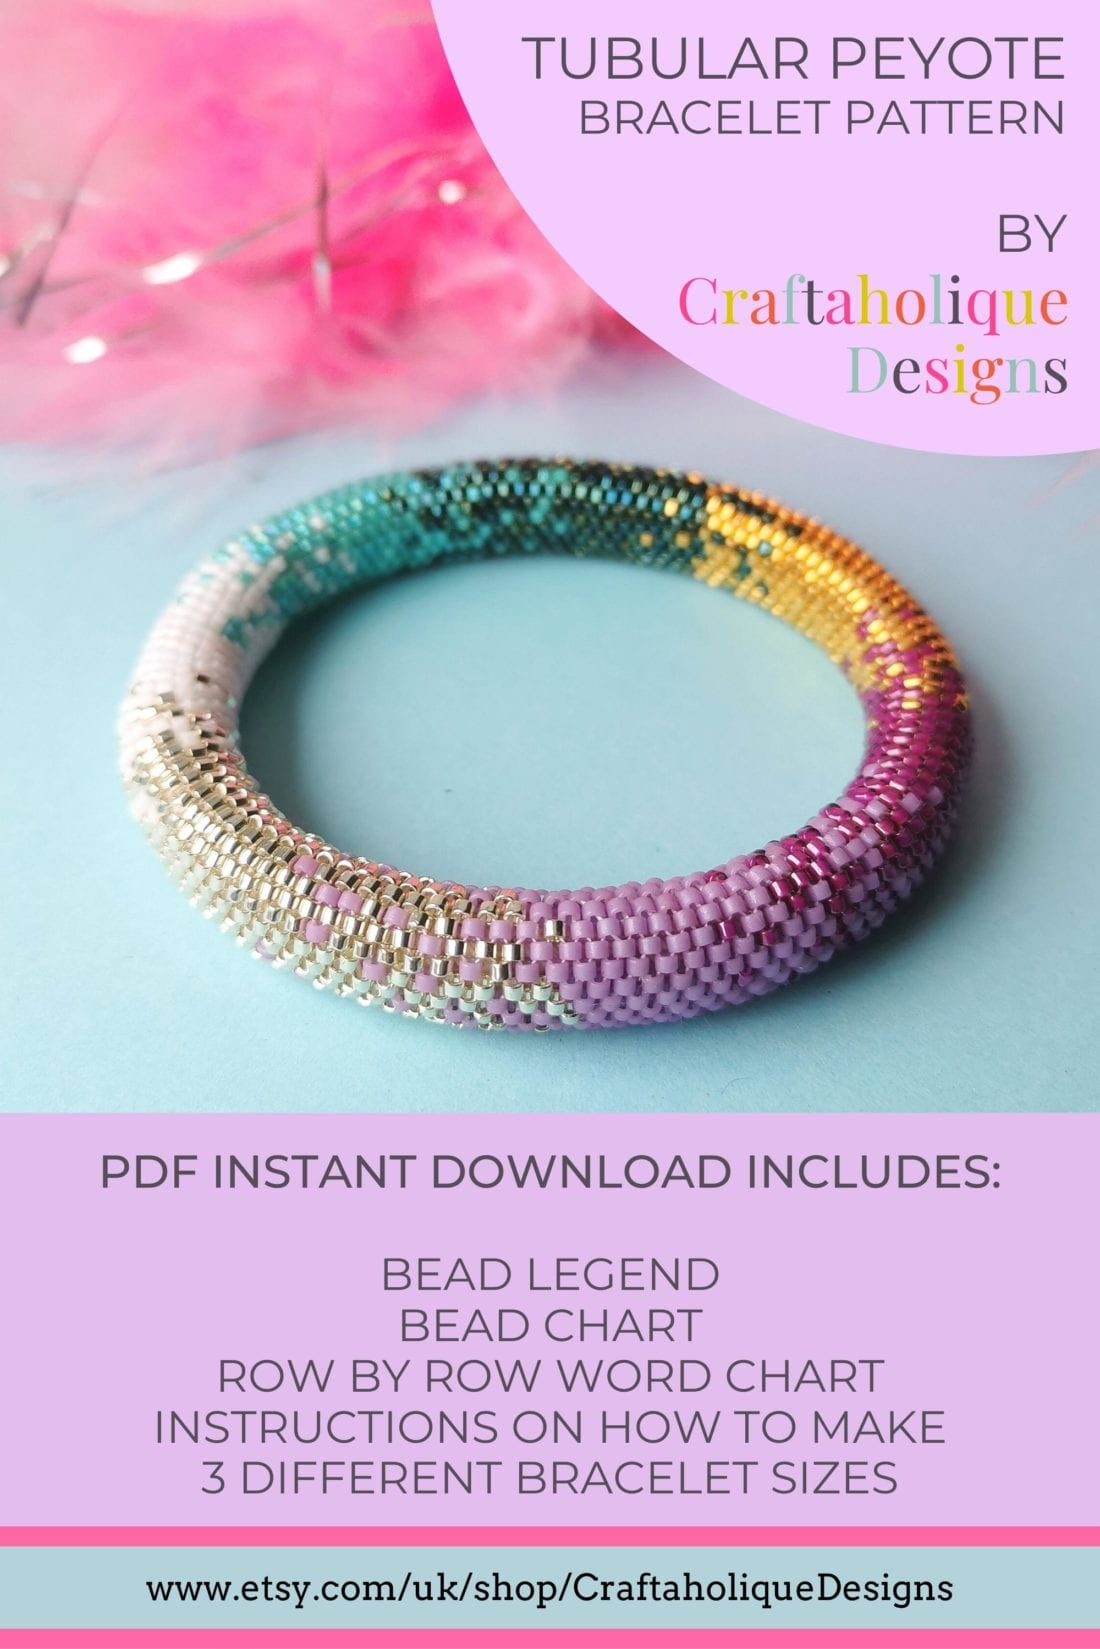 Colour Fusion peyote bracelet pattern by Craftaholique. This pattern uses Miyuki Delicas in a range of vibrant colours and finishes! Pattern available in three different sizes.